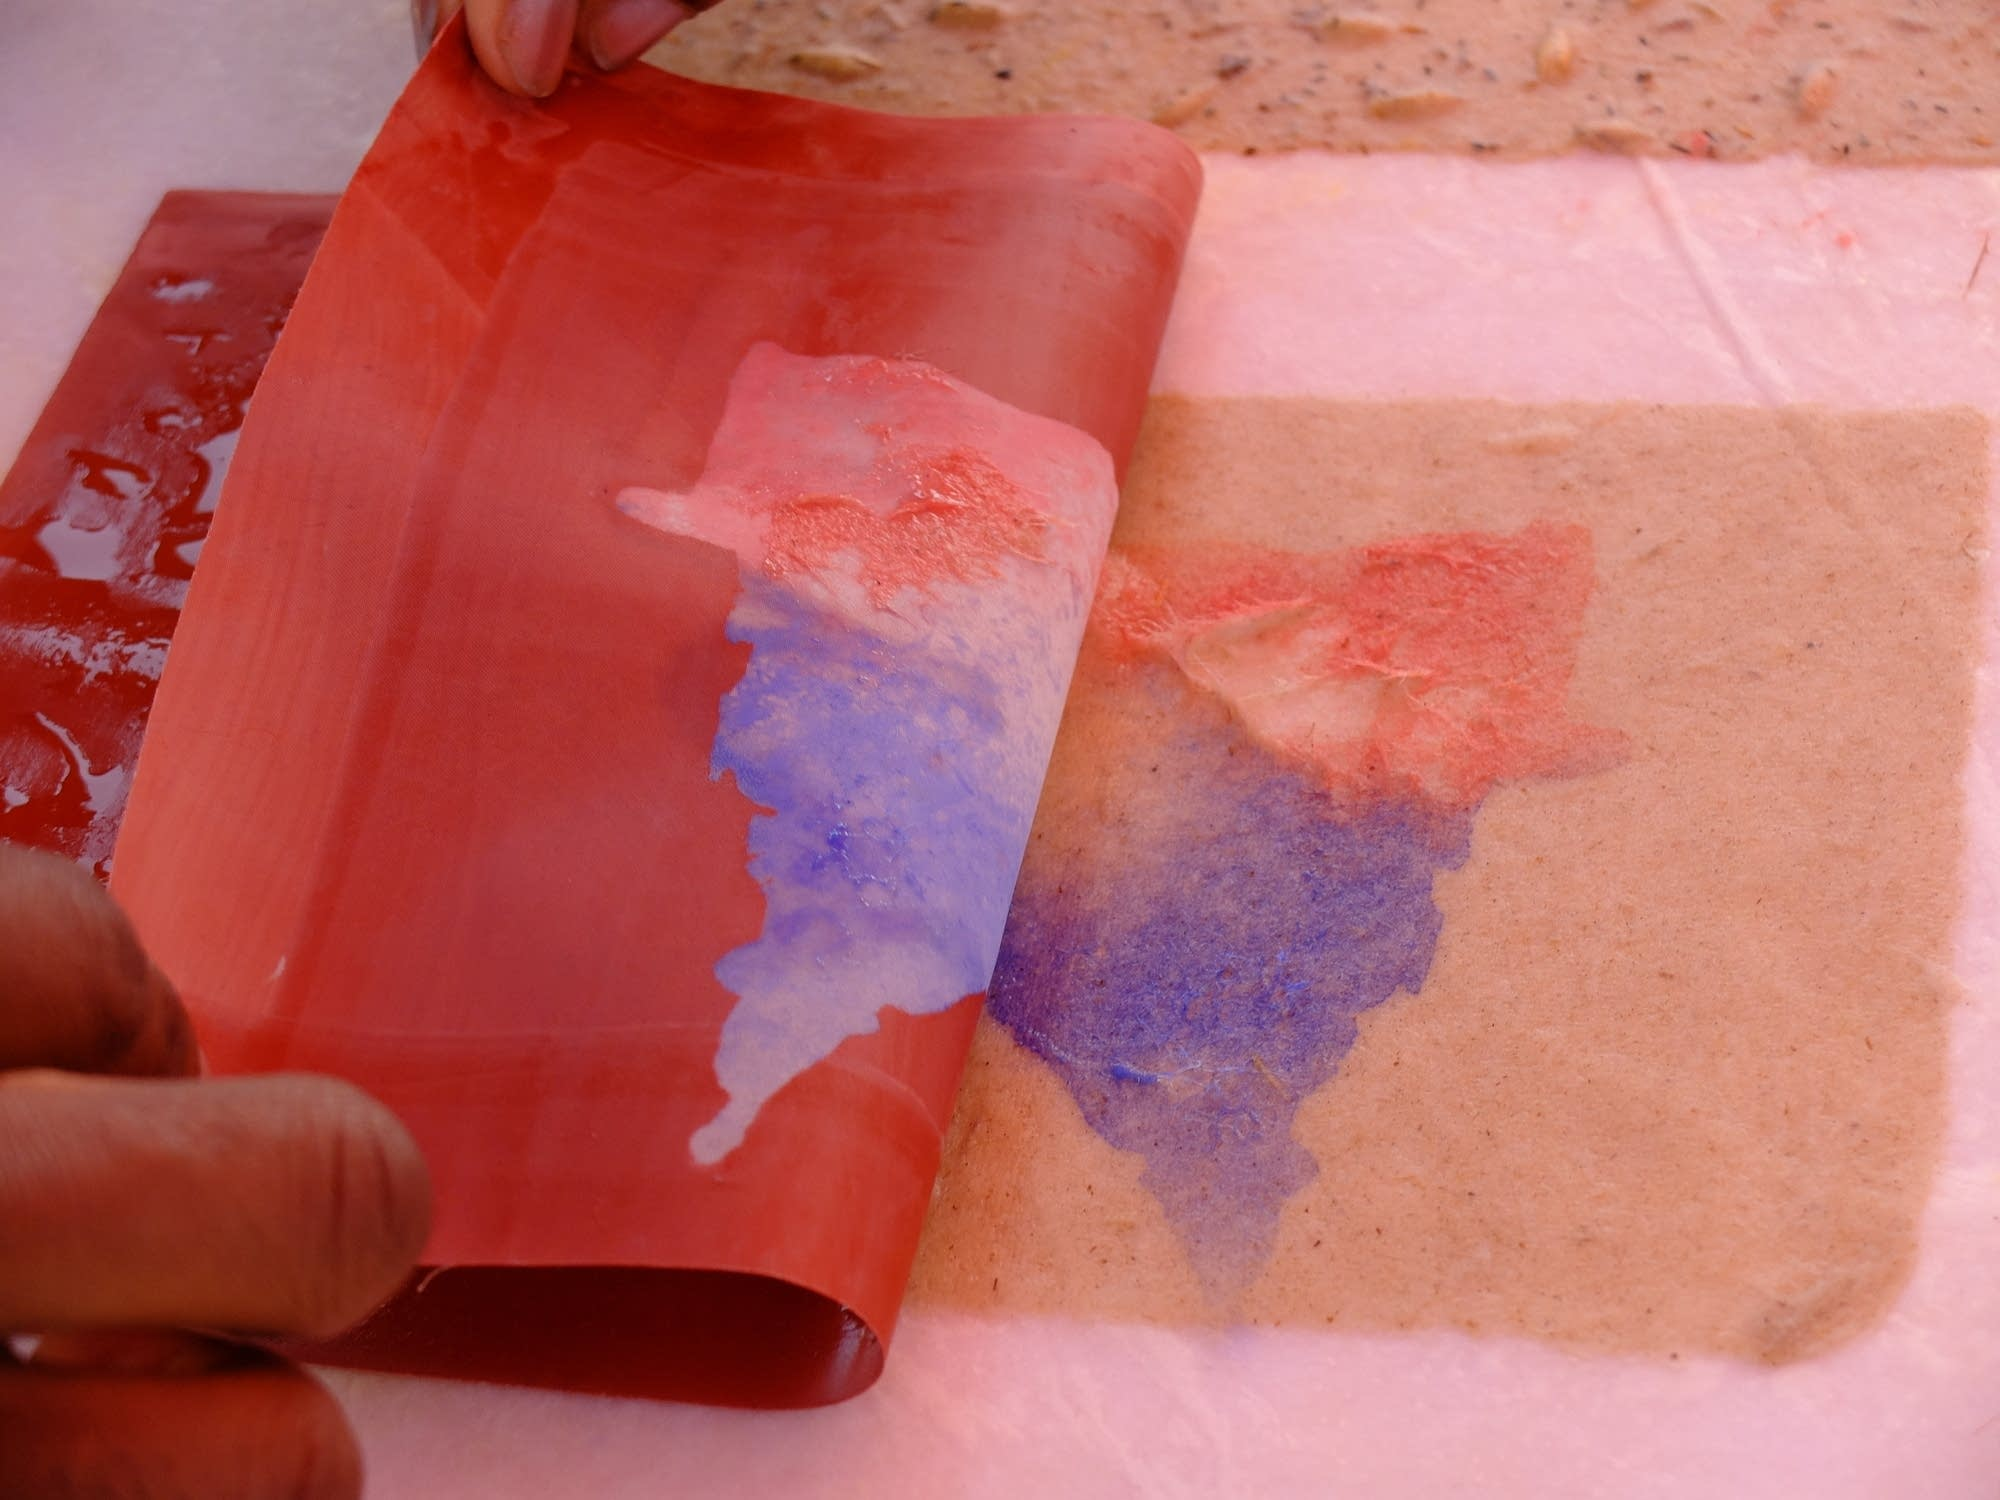 Colored paper pulp is used to make images on freshly made paper.